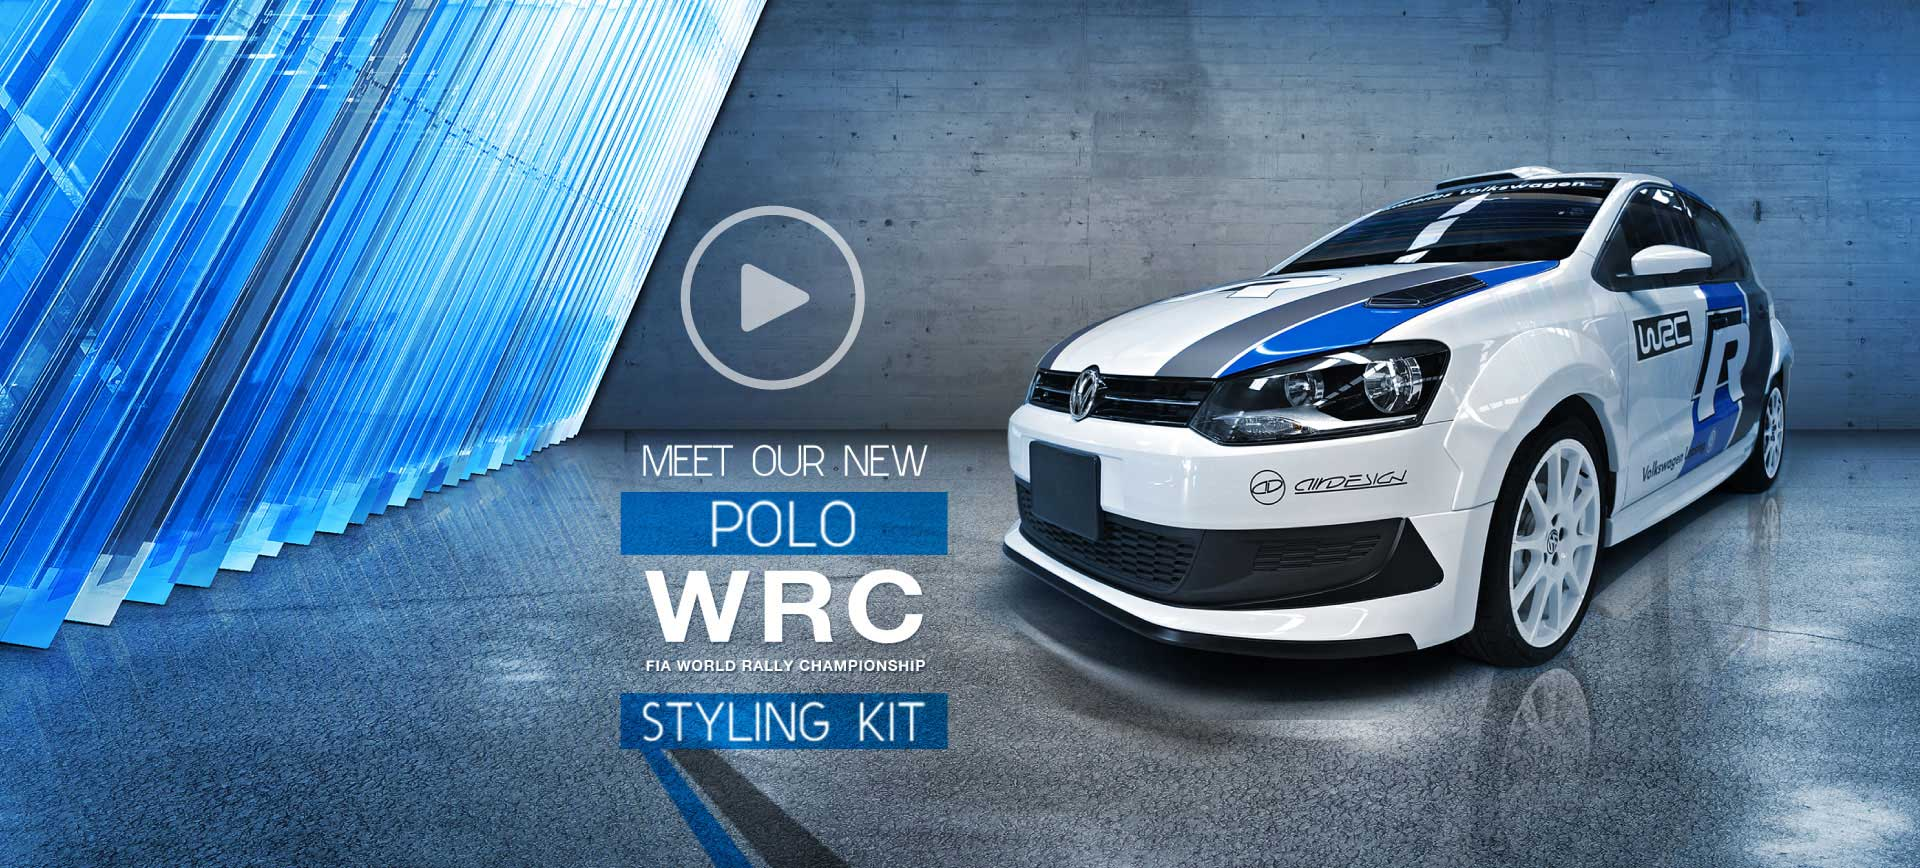 Air Design Other Line of Business Polo WRC